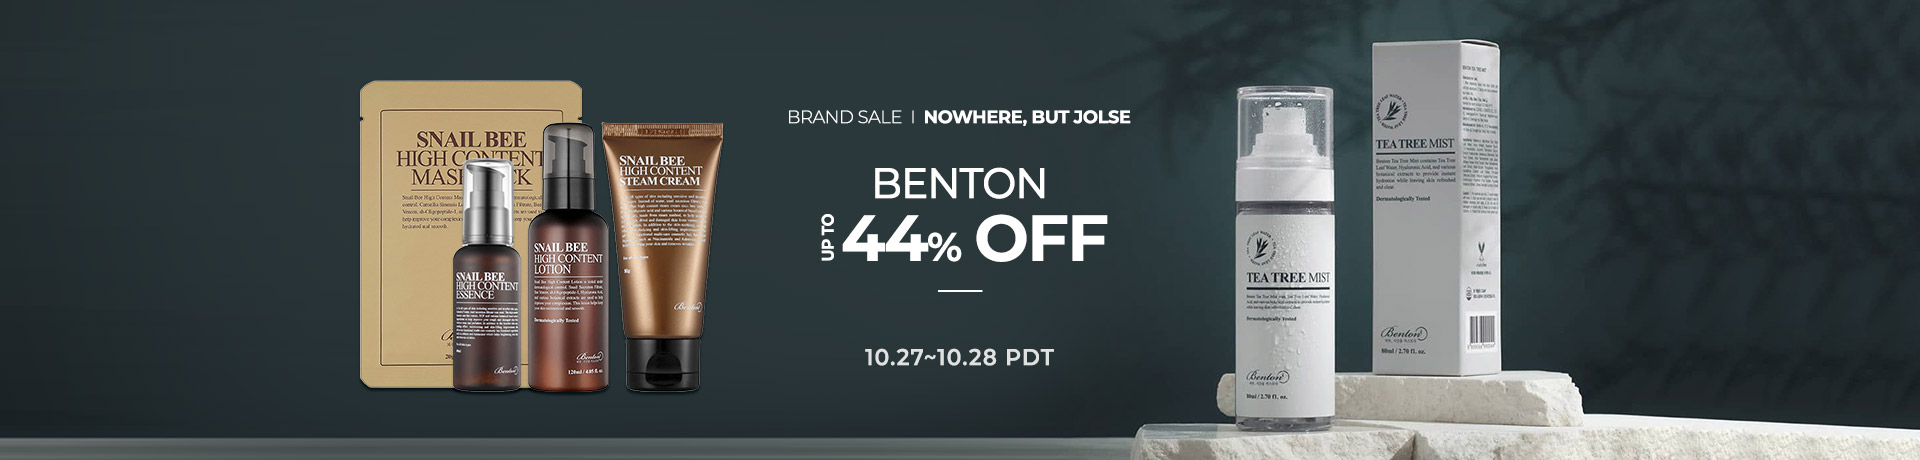 BENTON Up to 00% OFF